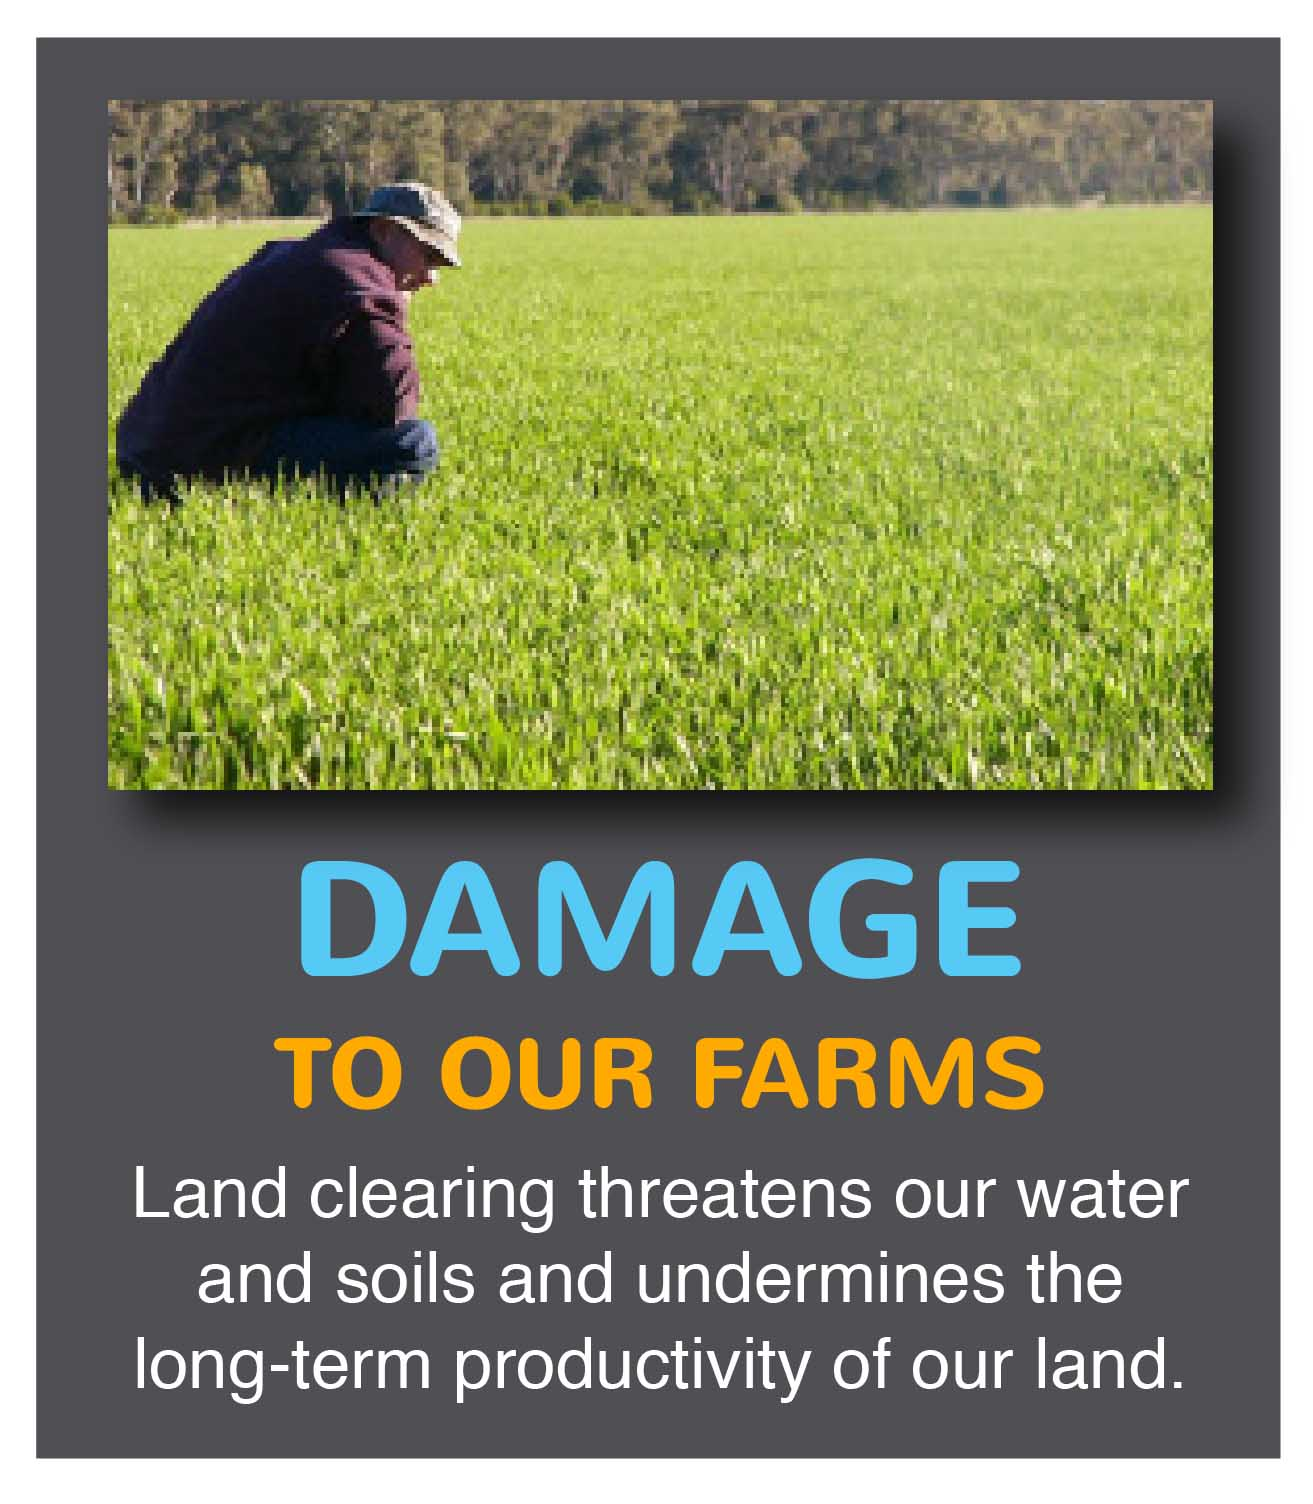 THE RISKS FOR OUR FARMS